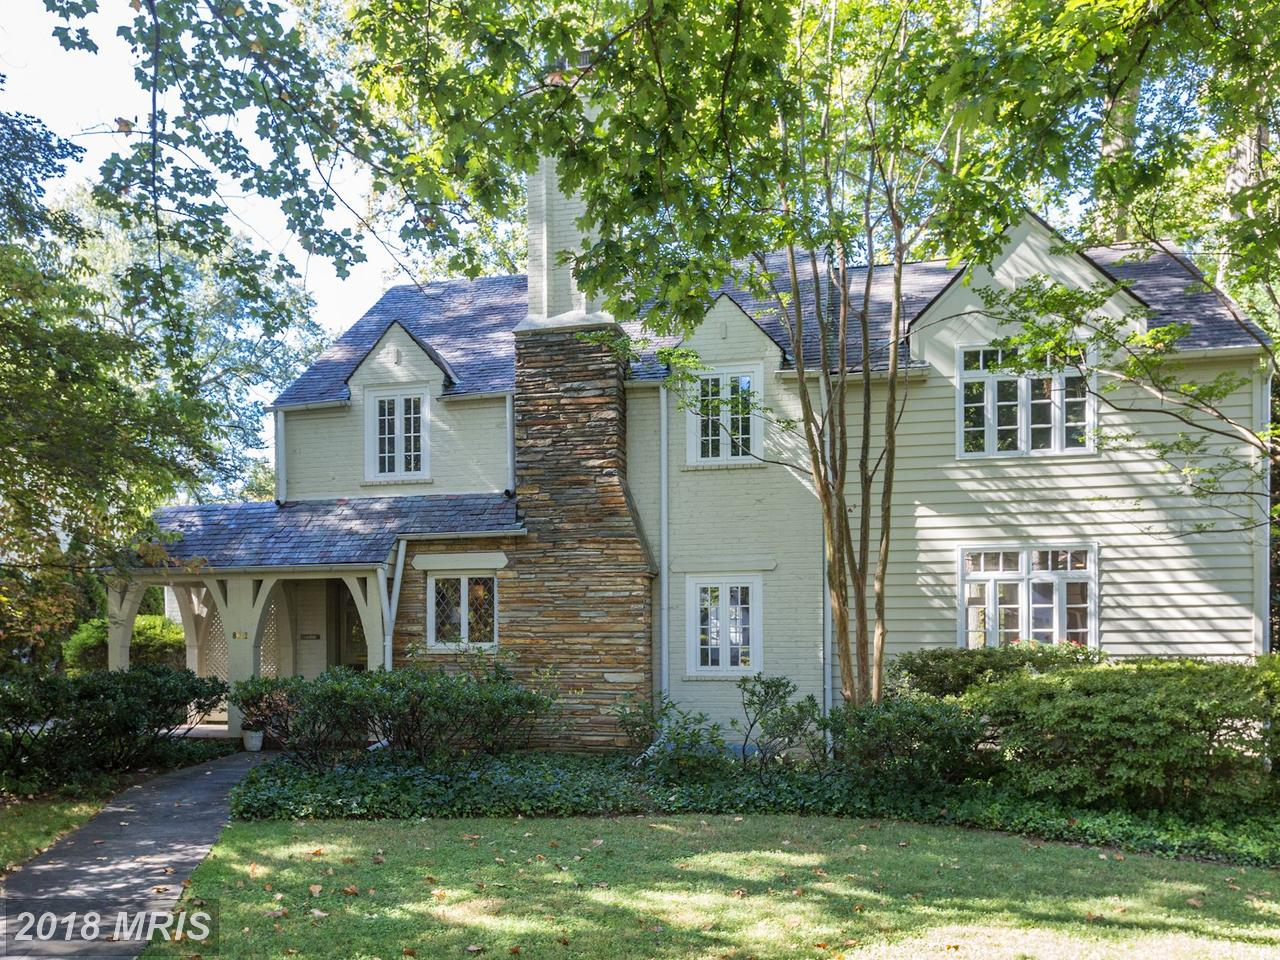 Maison unifamiliale pour l Vente à Tudor, Detached - BETHESDA, MD 8012 HAMPDEN LN Bethesda, Maryland,20814 États-Unis